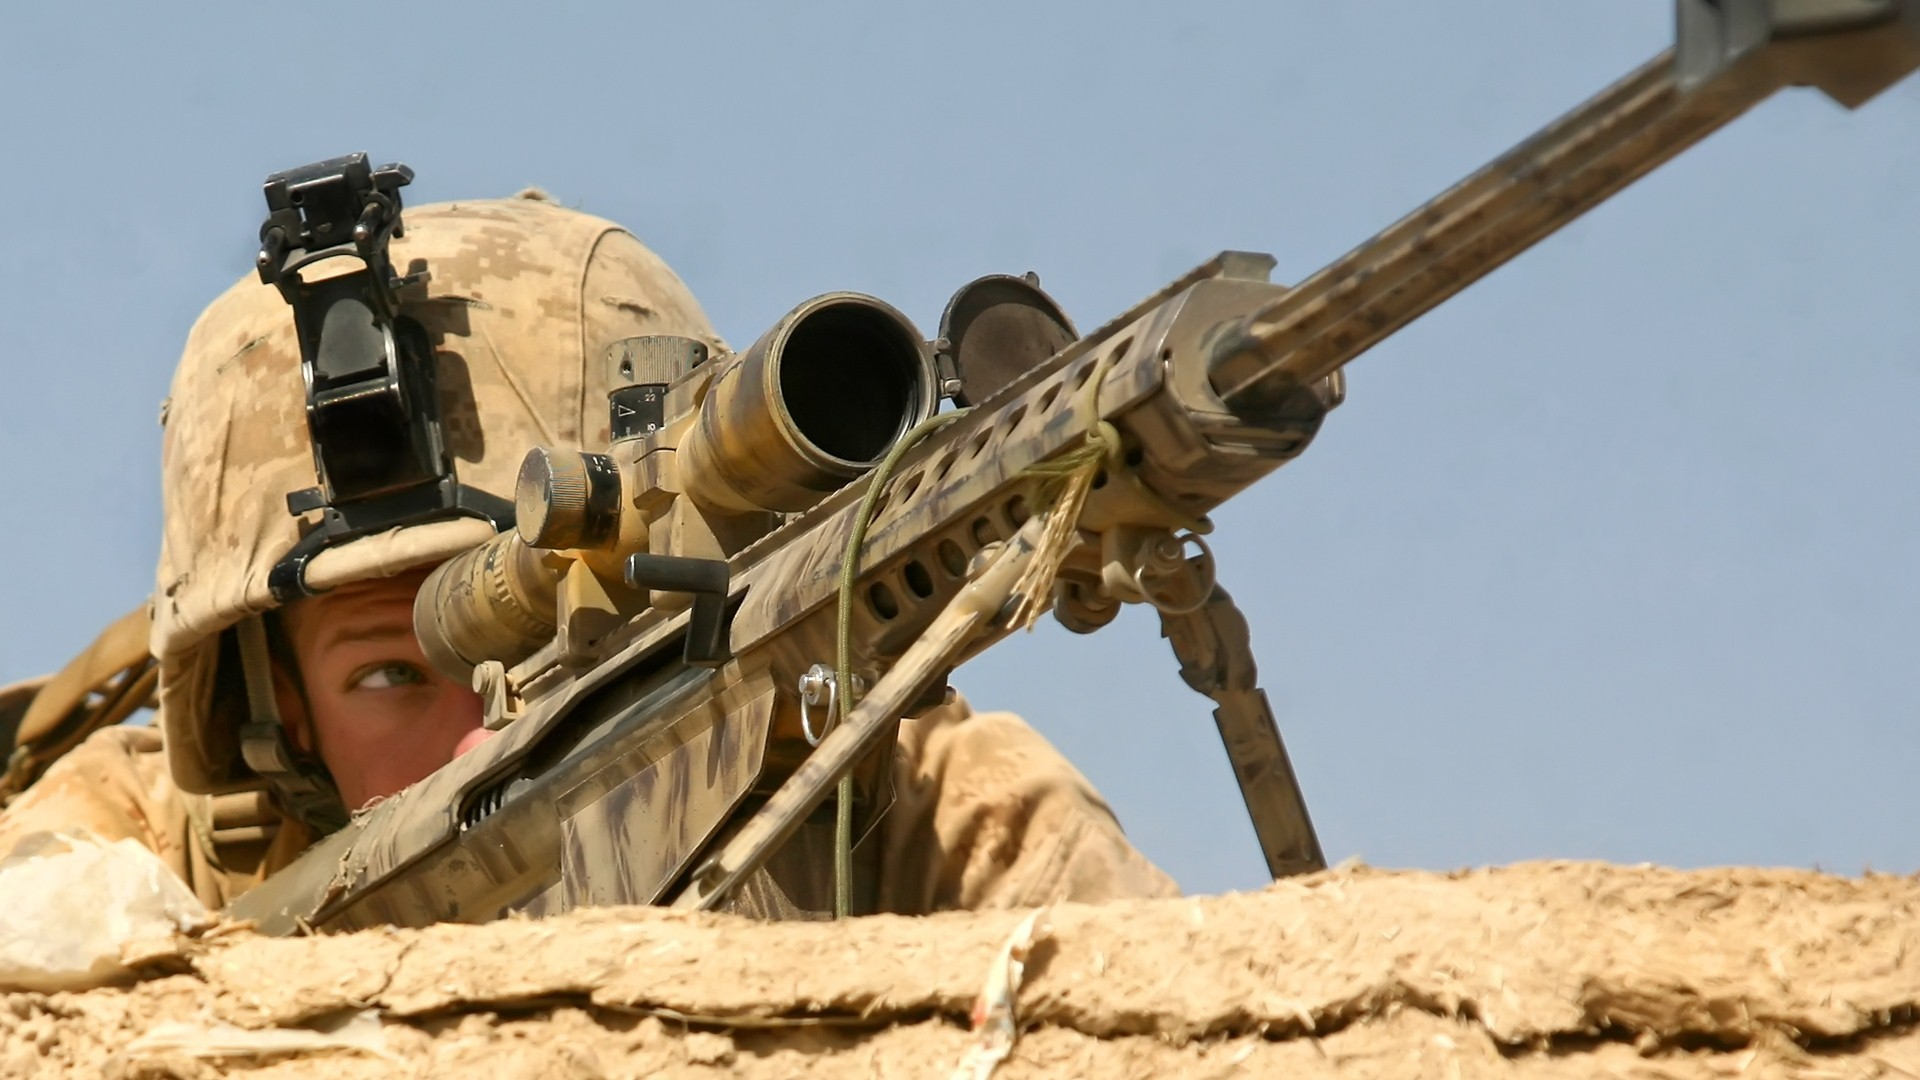 1920x1080 US Army Soldiers Shoot Using Sniper Rifle Photo | HD Famous Wallpapers